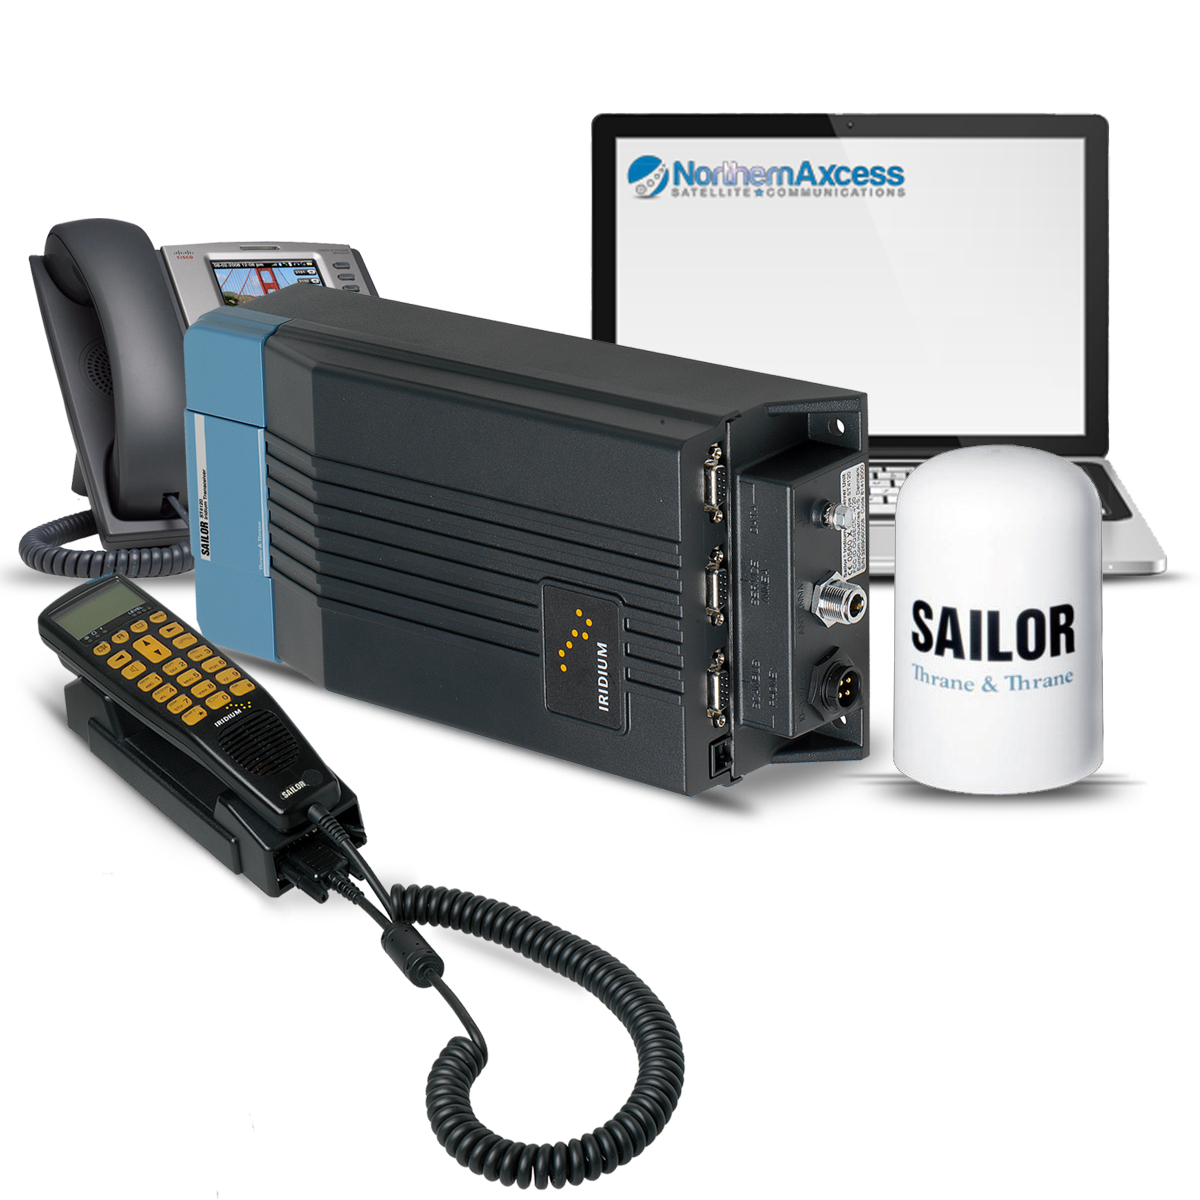 sailor-sc4000-iridium-fixed-terminal-with-laptop-handset-pbx.jpg